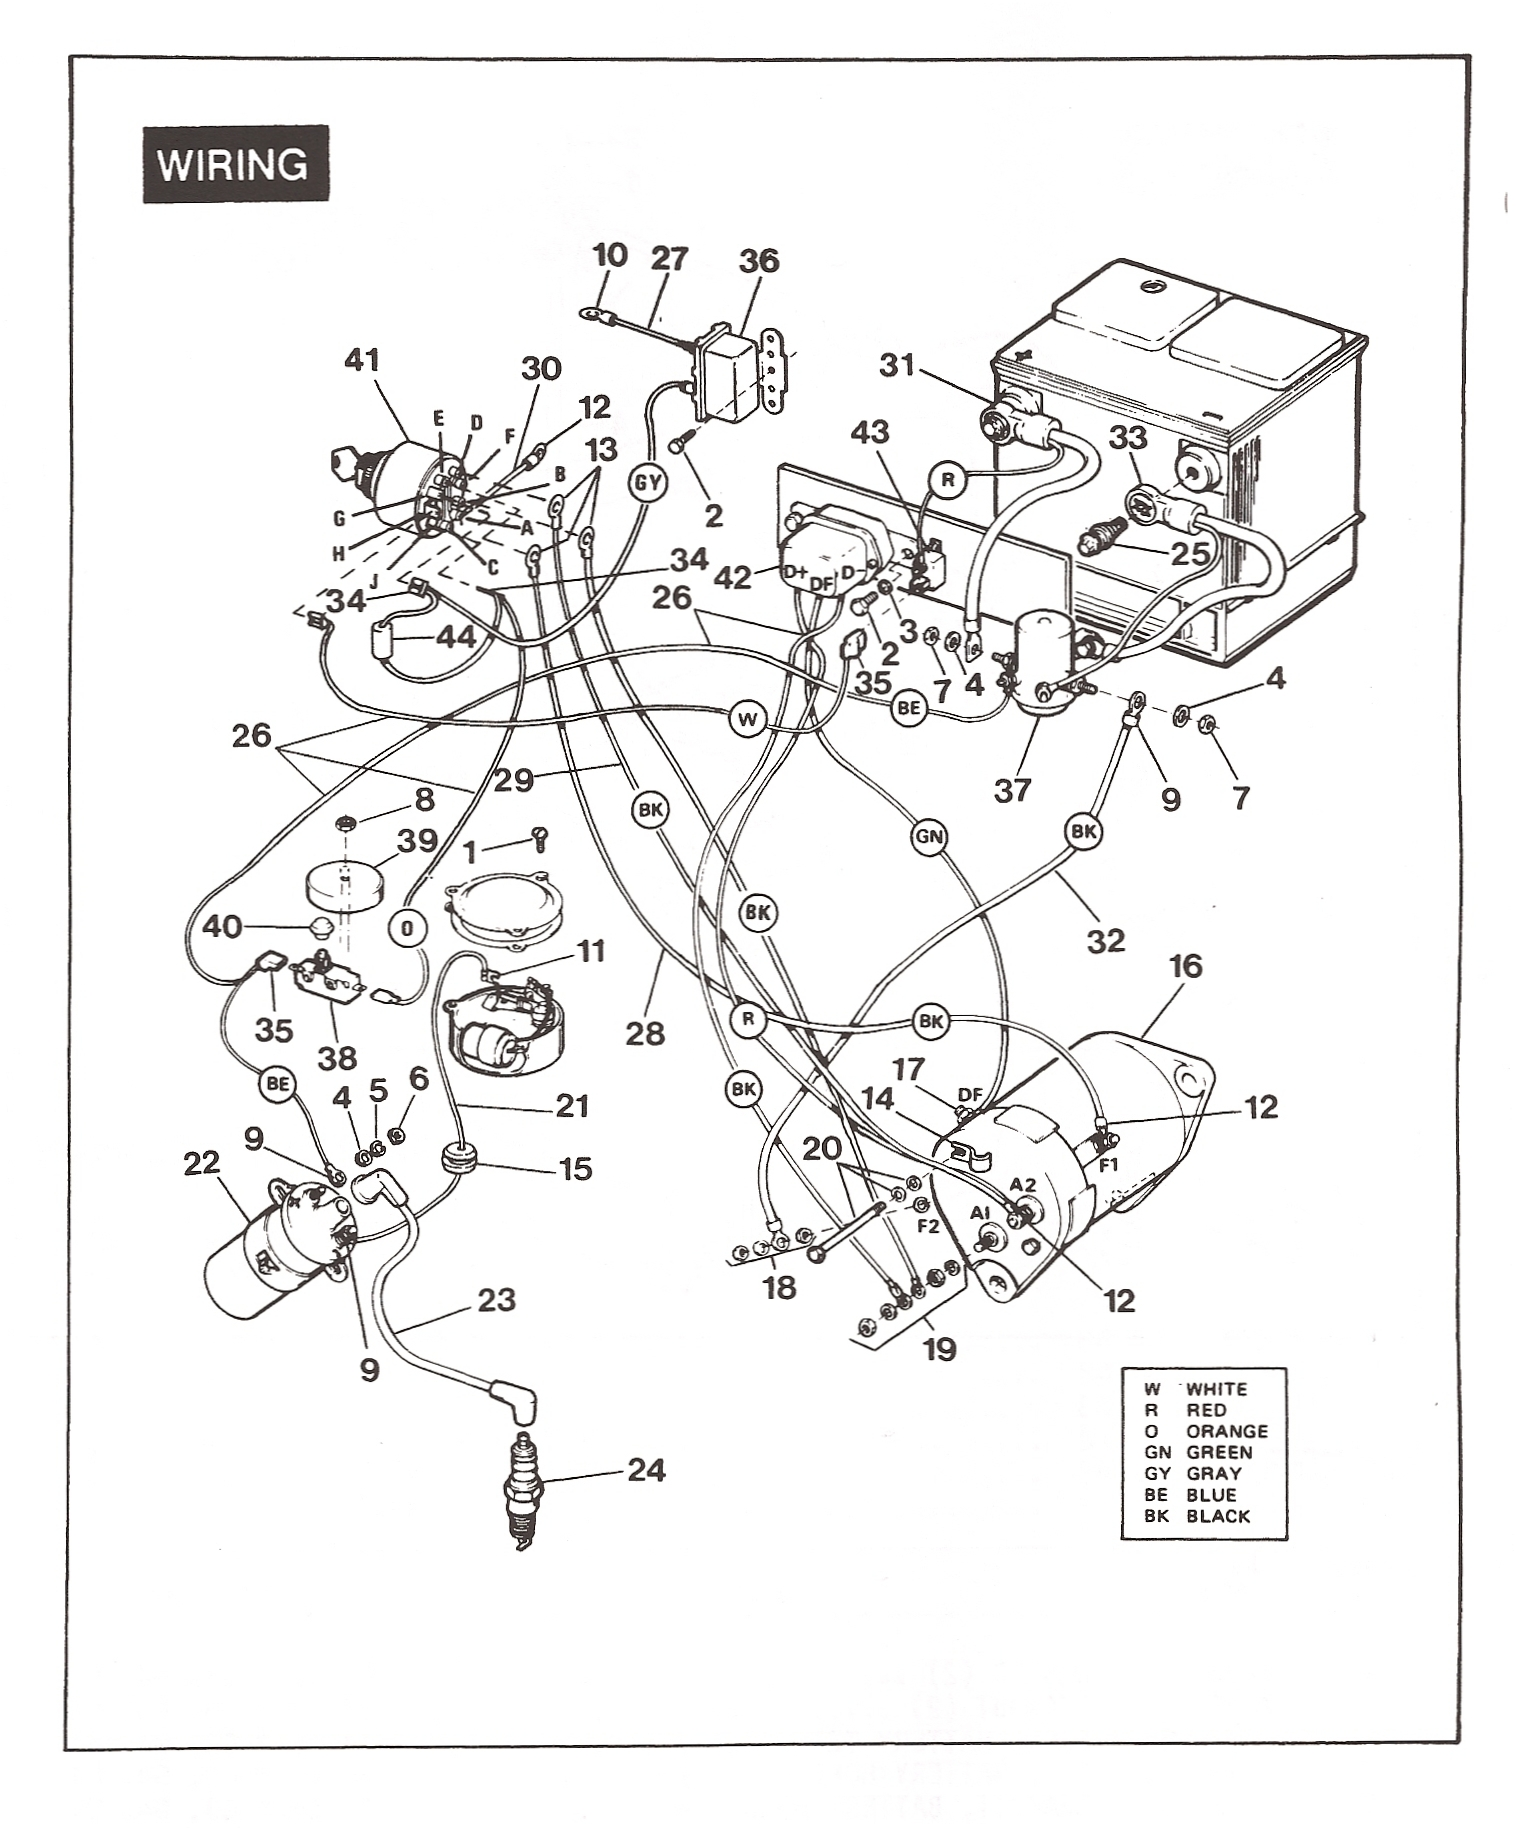 86 ez go golf carts wiring diagram